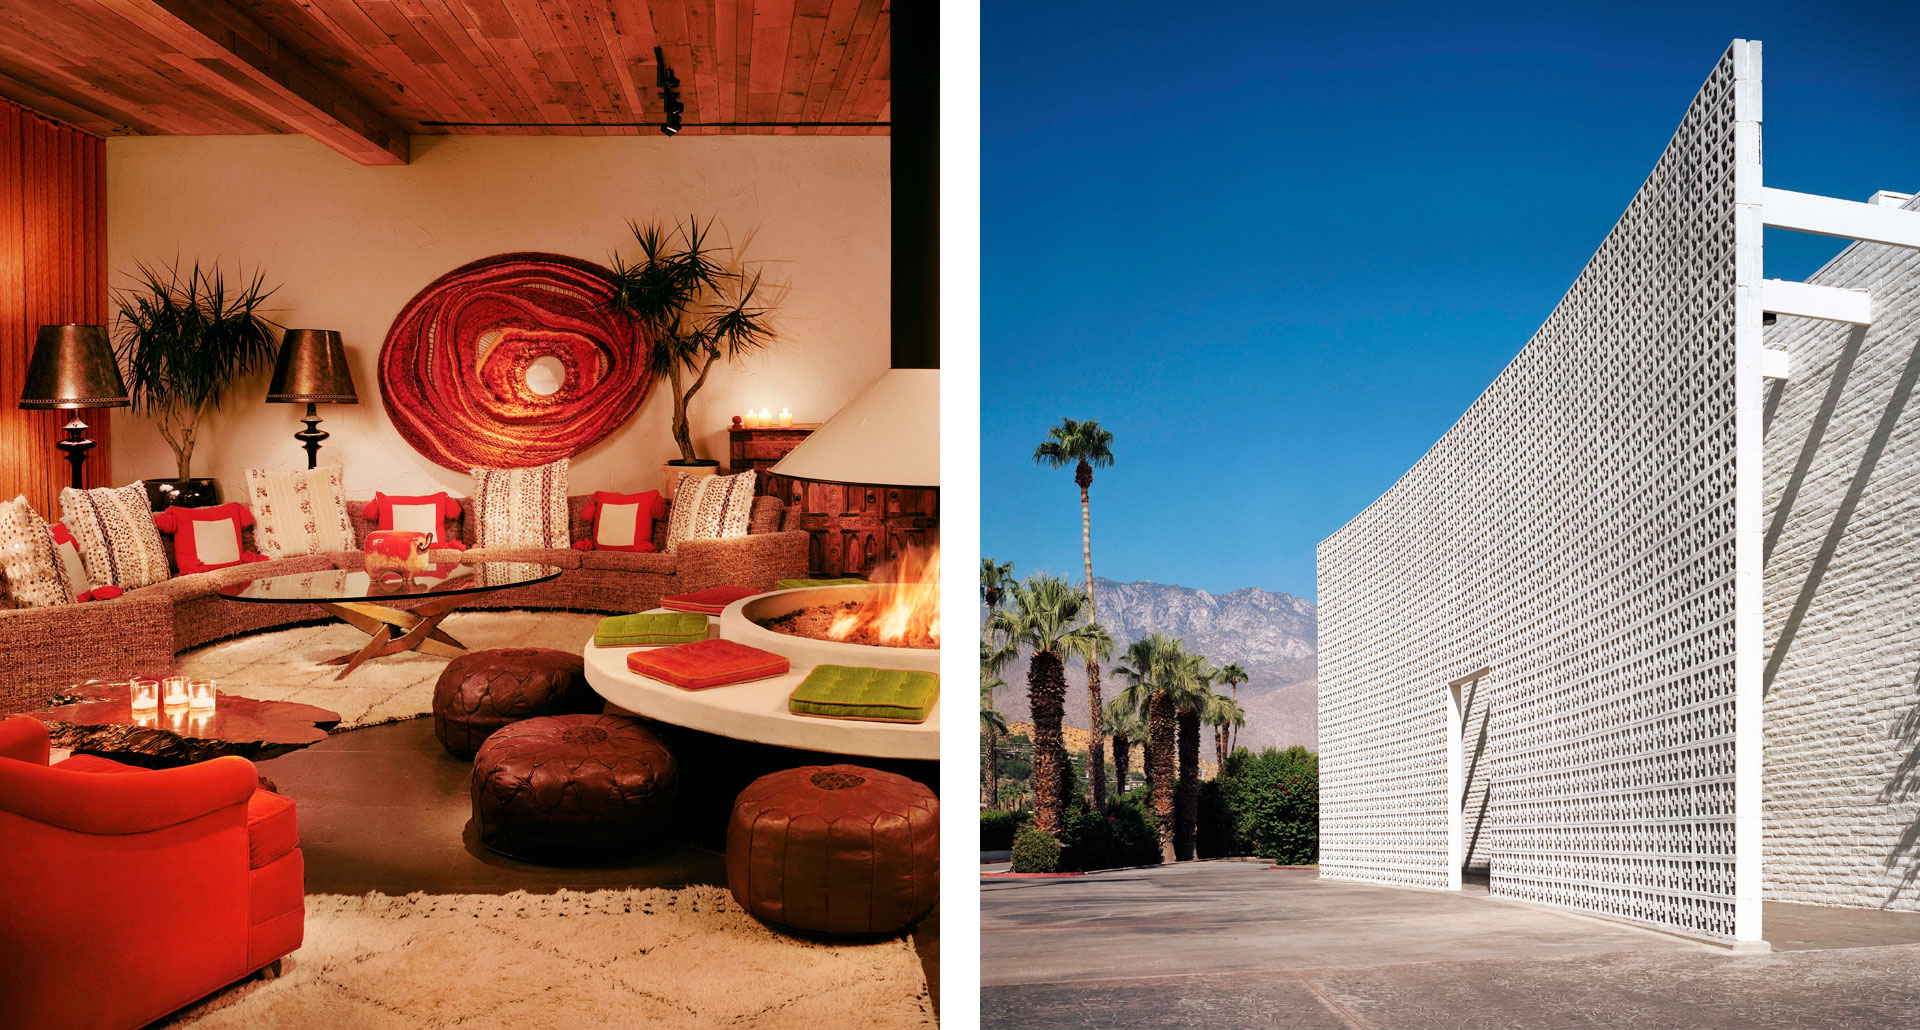 PARKER PALM SPRINGS - boutique hotel in Palm Springs